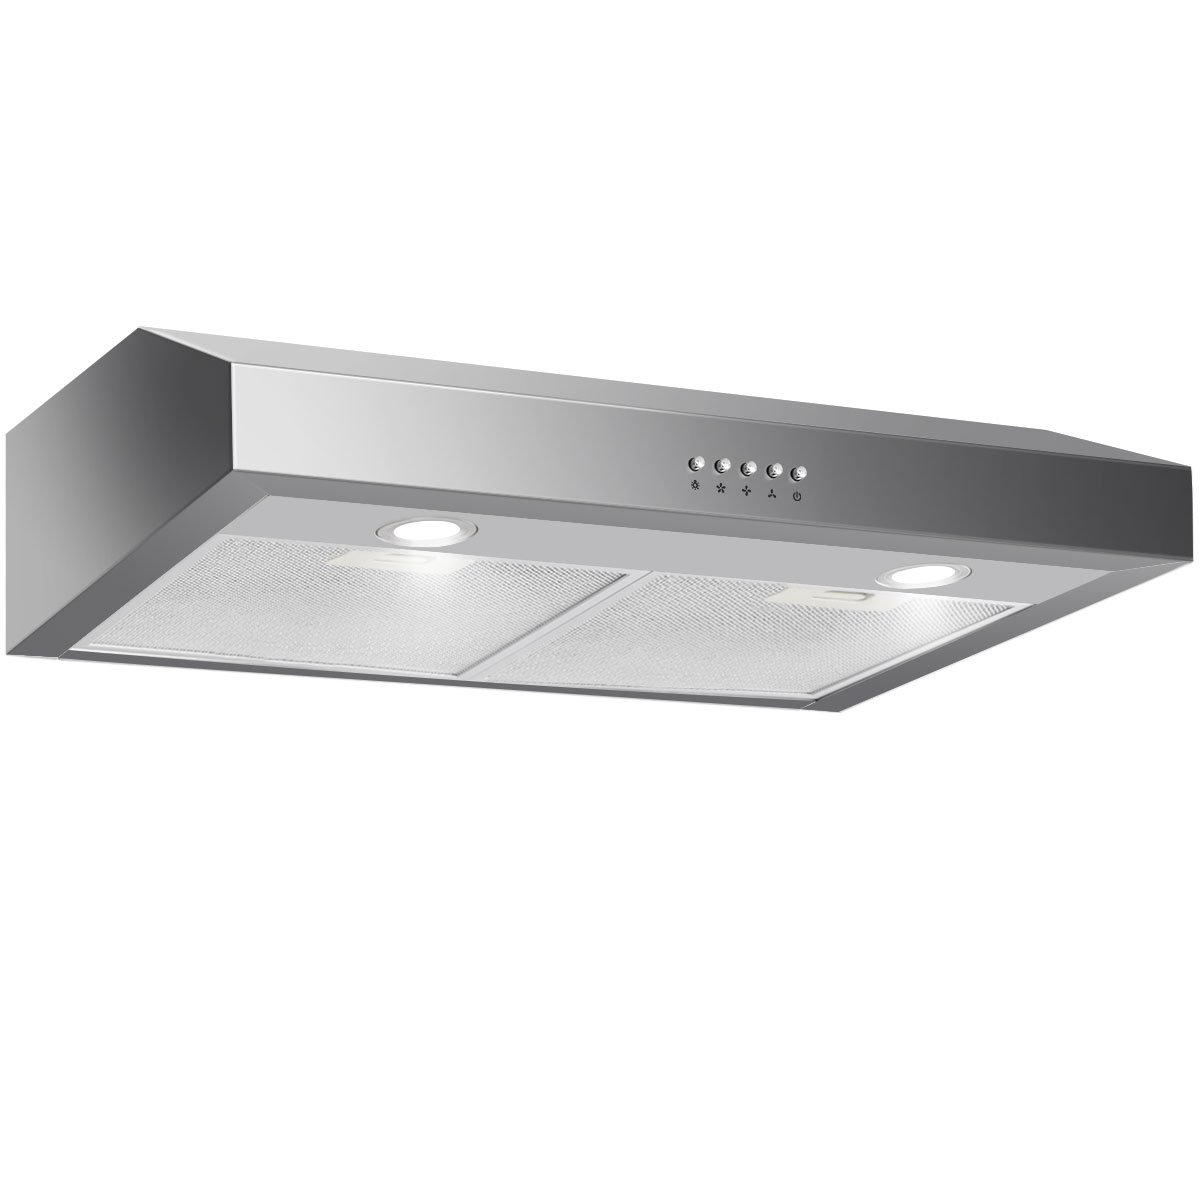 Costway 30 Capable Under Cabinet Range Hood 3-Speed Stainless Steel Cooking Vent Fan with LED Light (Under Cabinet with 7 Height)